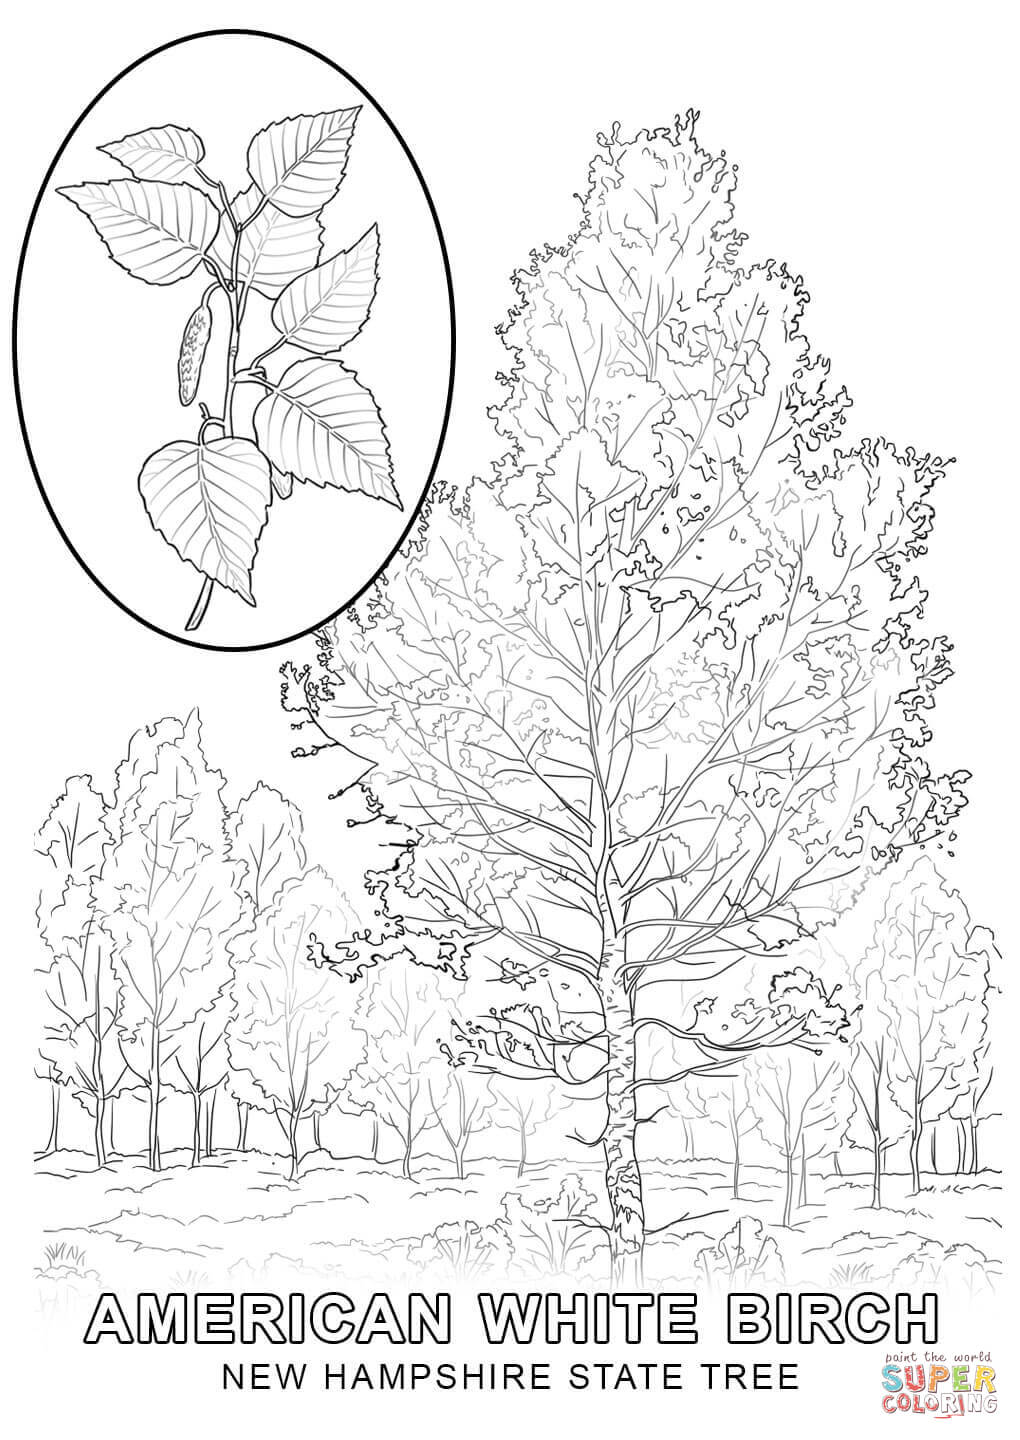 state tree coloring pages louisiana state tree coloring page free printable state tree pages coloring